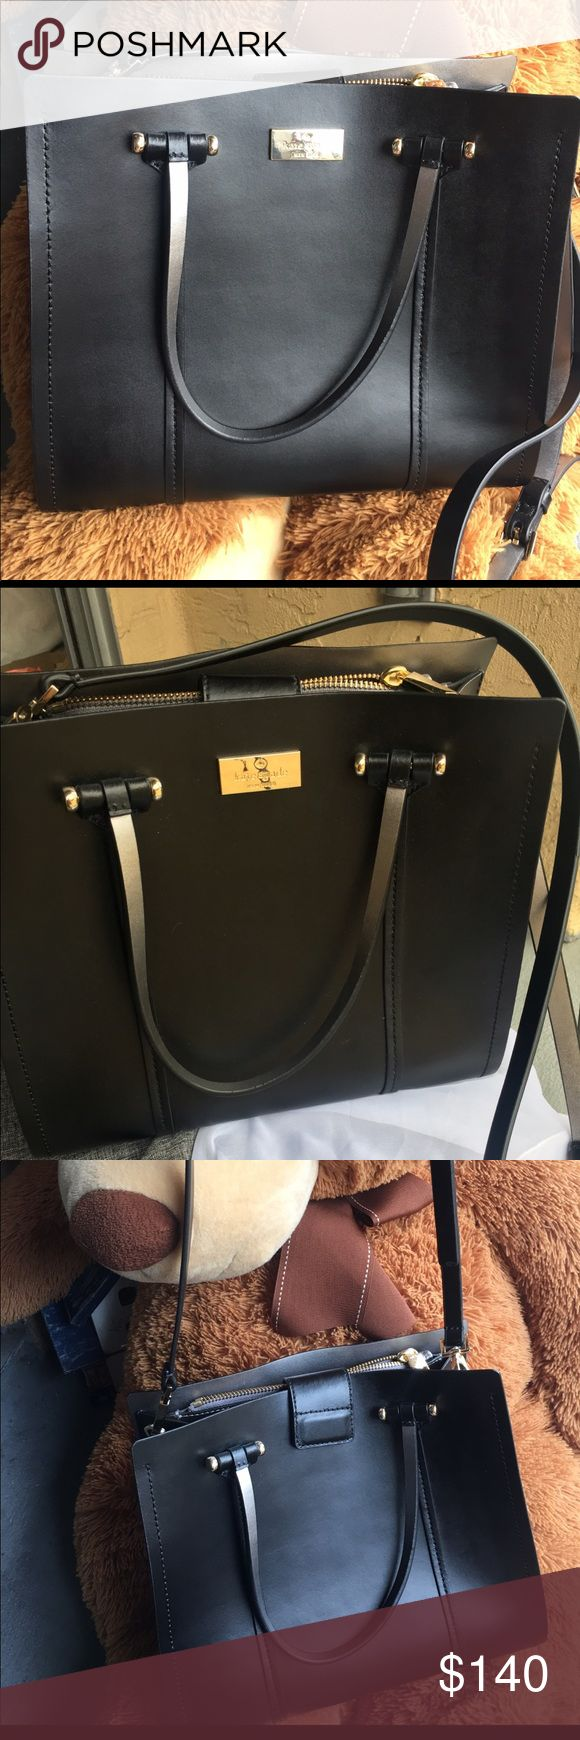 ♠️Kate Spade Handbag♠️ Like new. With Magnetic clip. Like open bag with both black and silver color on strap and inside 😊 kate spade Bags Crossbody Bags